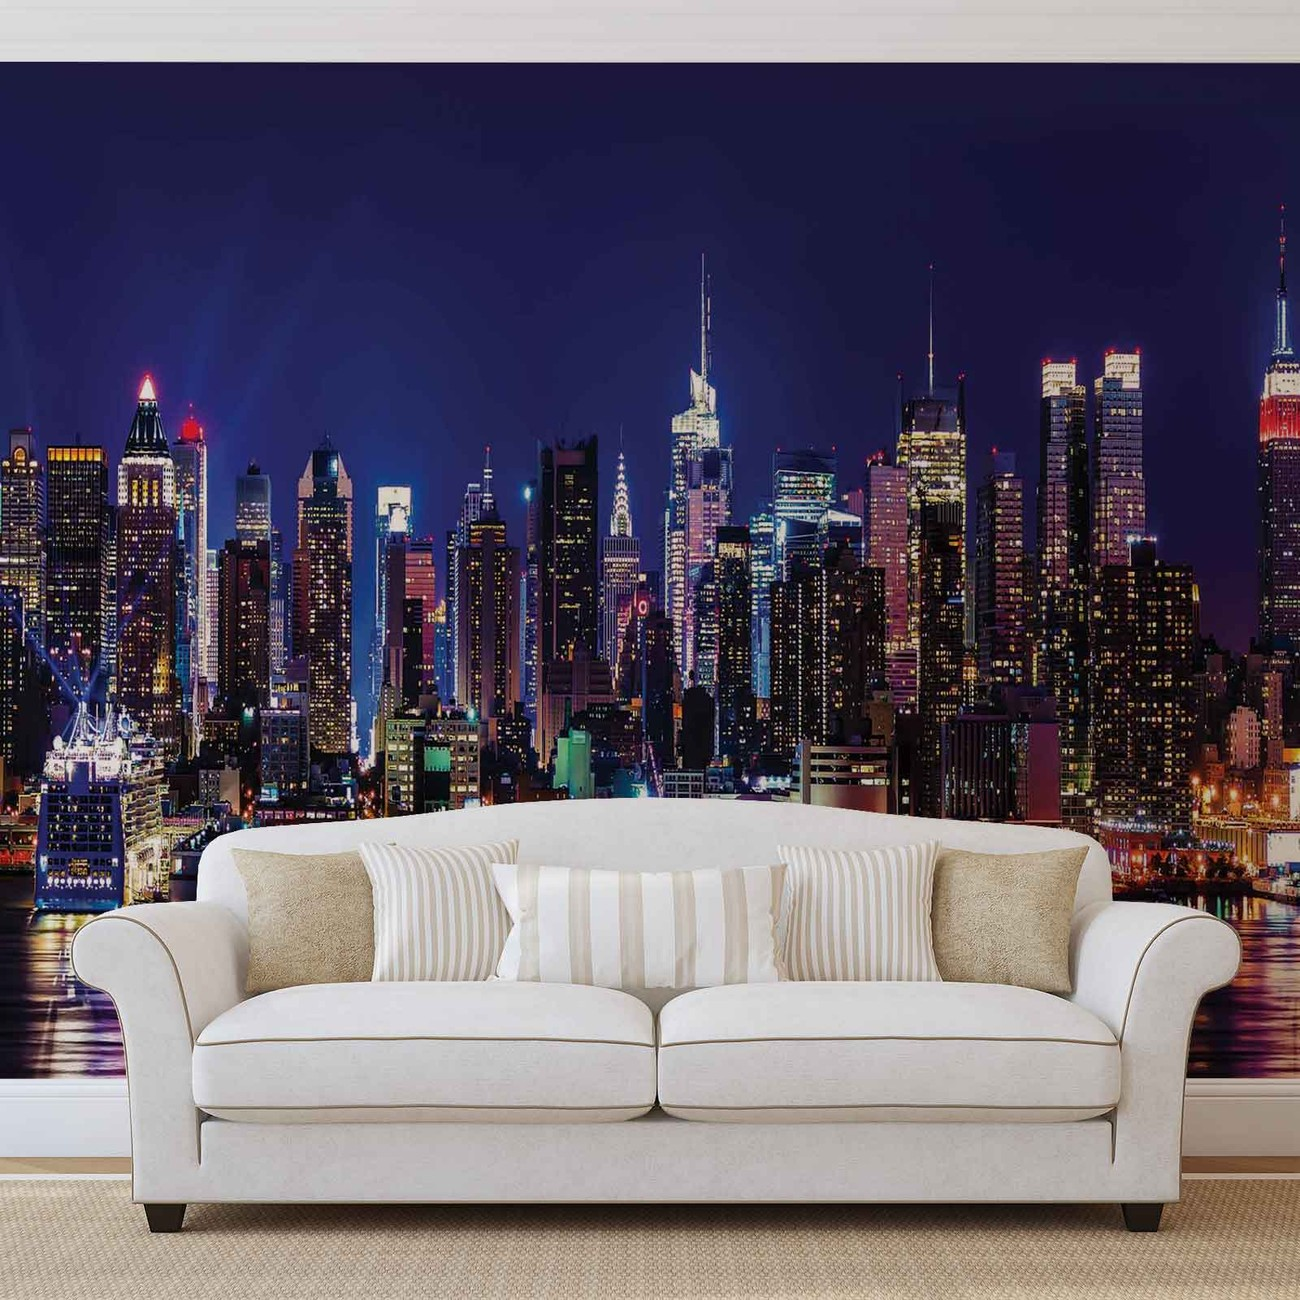 New york city wall paper mural buy at europosters for Poster mural new york